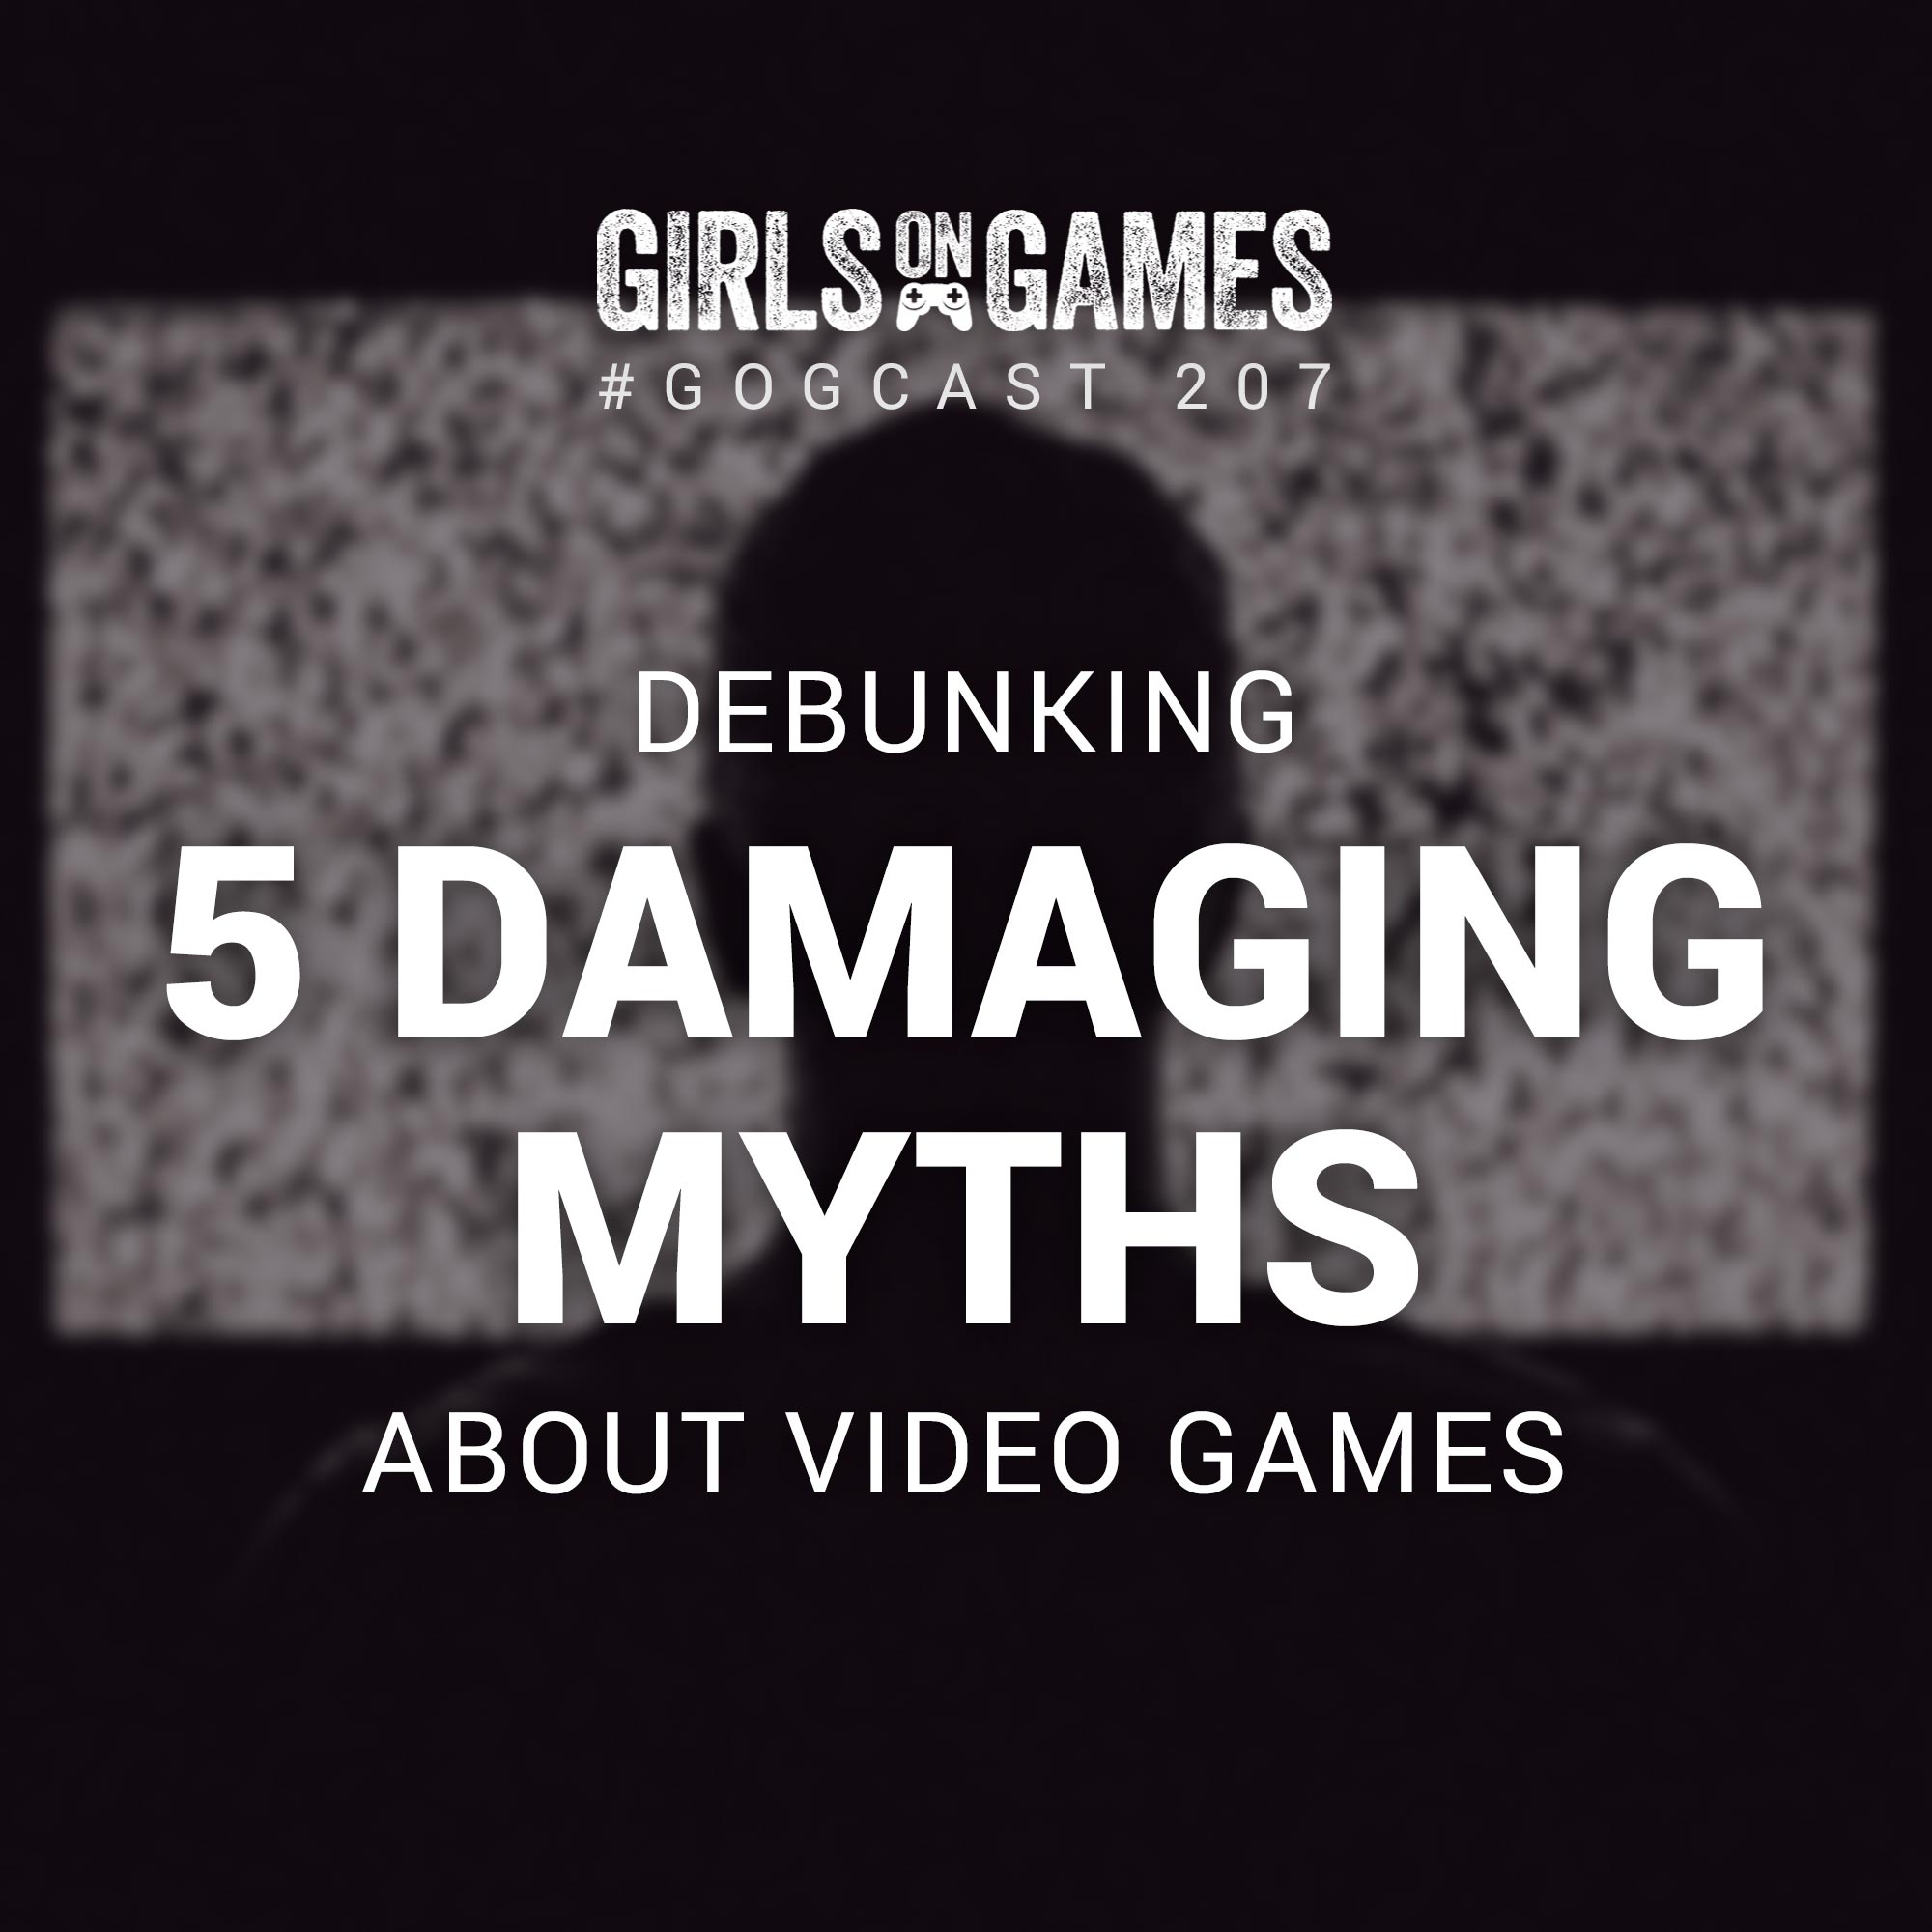 Debunking 5 Damaging Myths About Video Games - GoGCast 207